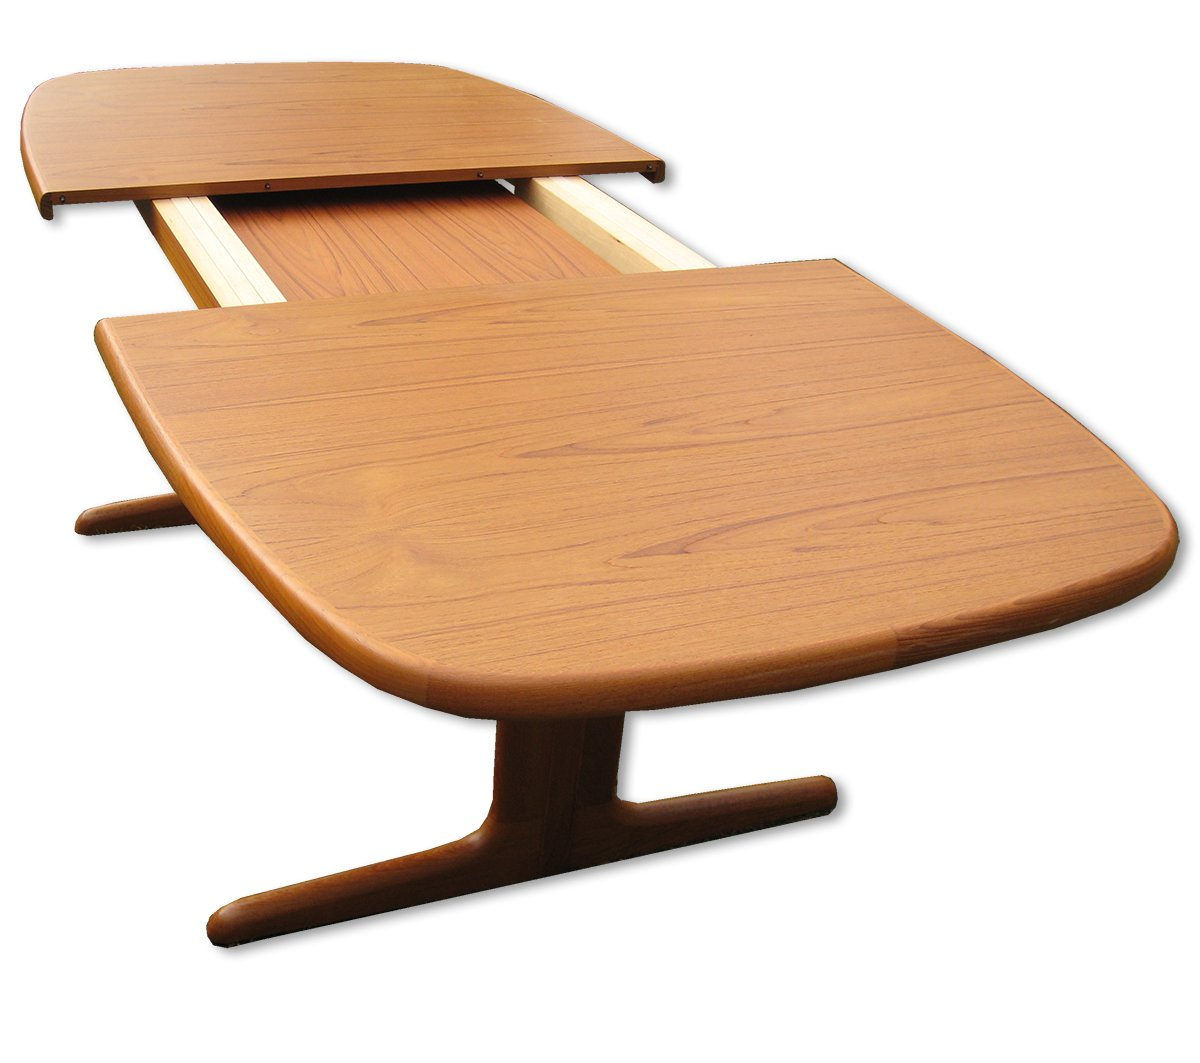 Teak Oval Dining Table Danish Extendable Oval Teak Dining Table From Skovby 1970s For